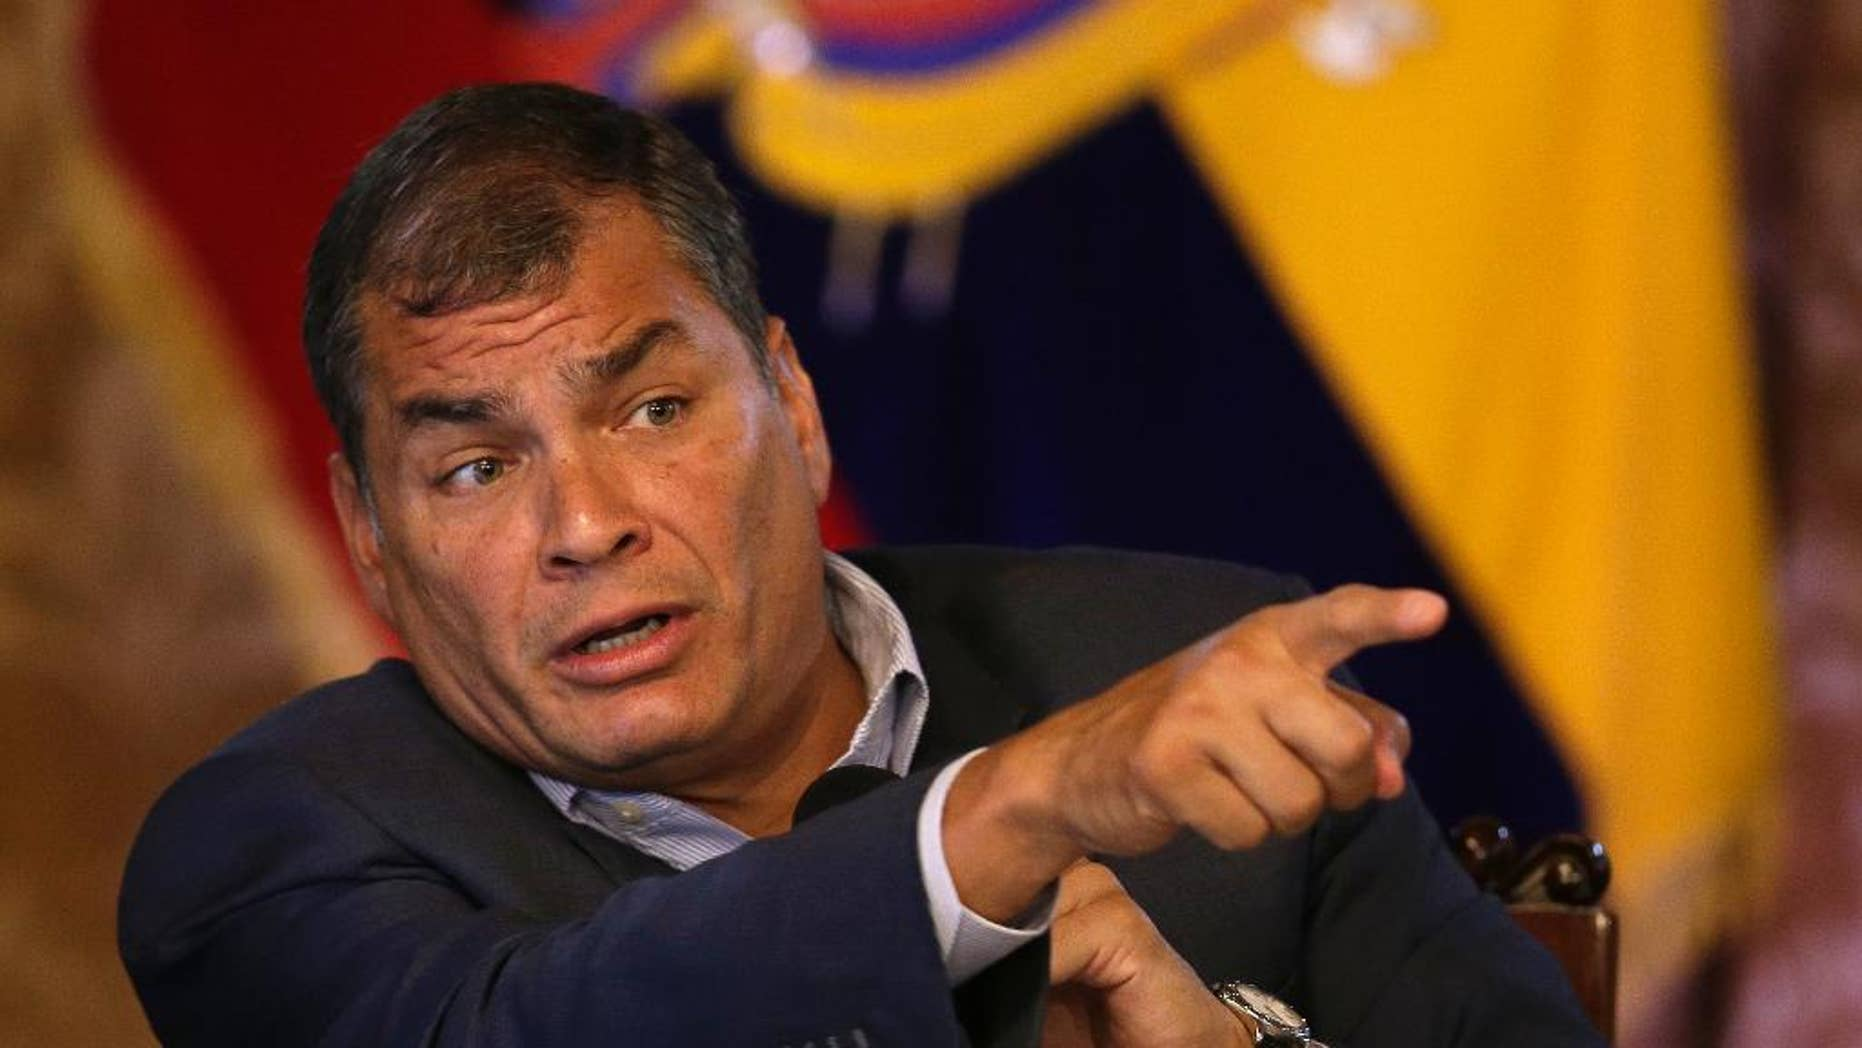 FILE - In this June 8, 2016, file photo, Ecuador's President Rafael Correa points during a press conference in Quito, Ecuador. An Ecuadorean journalist convicted of libeling President Rafael Correa said on Thursday, Aug. 11, that he is broke and must take up a public collection to pay the $141,000 judgment. (AP Photo/Dolores Ochoa, File)